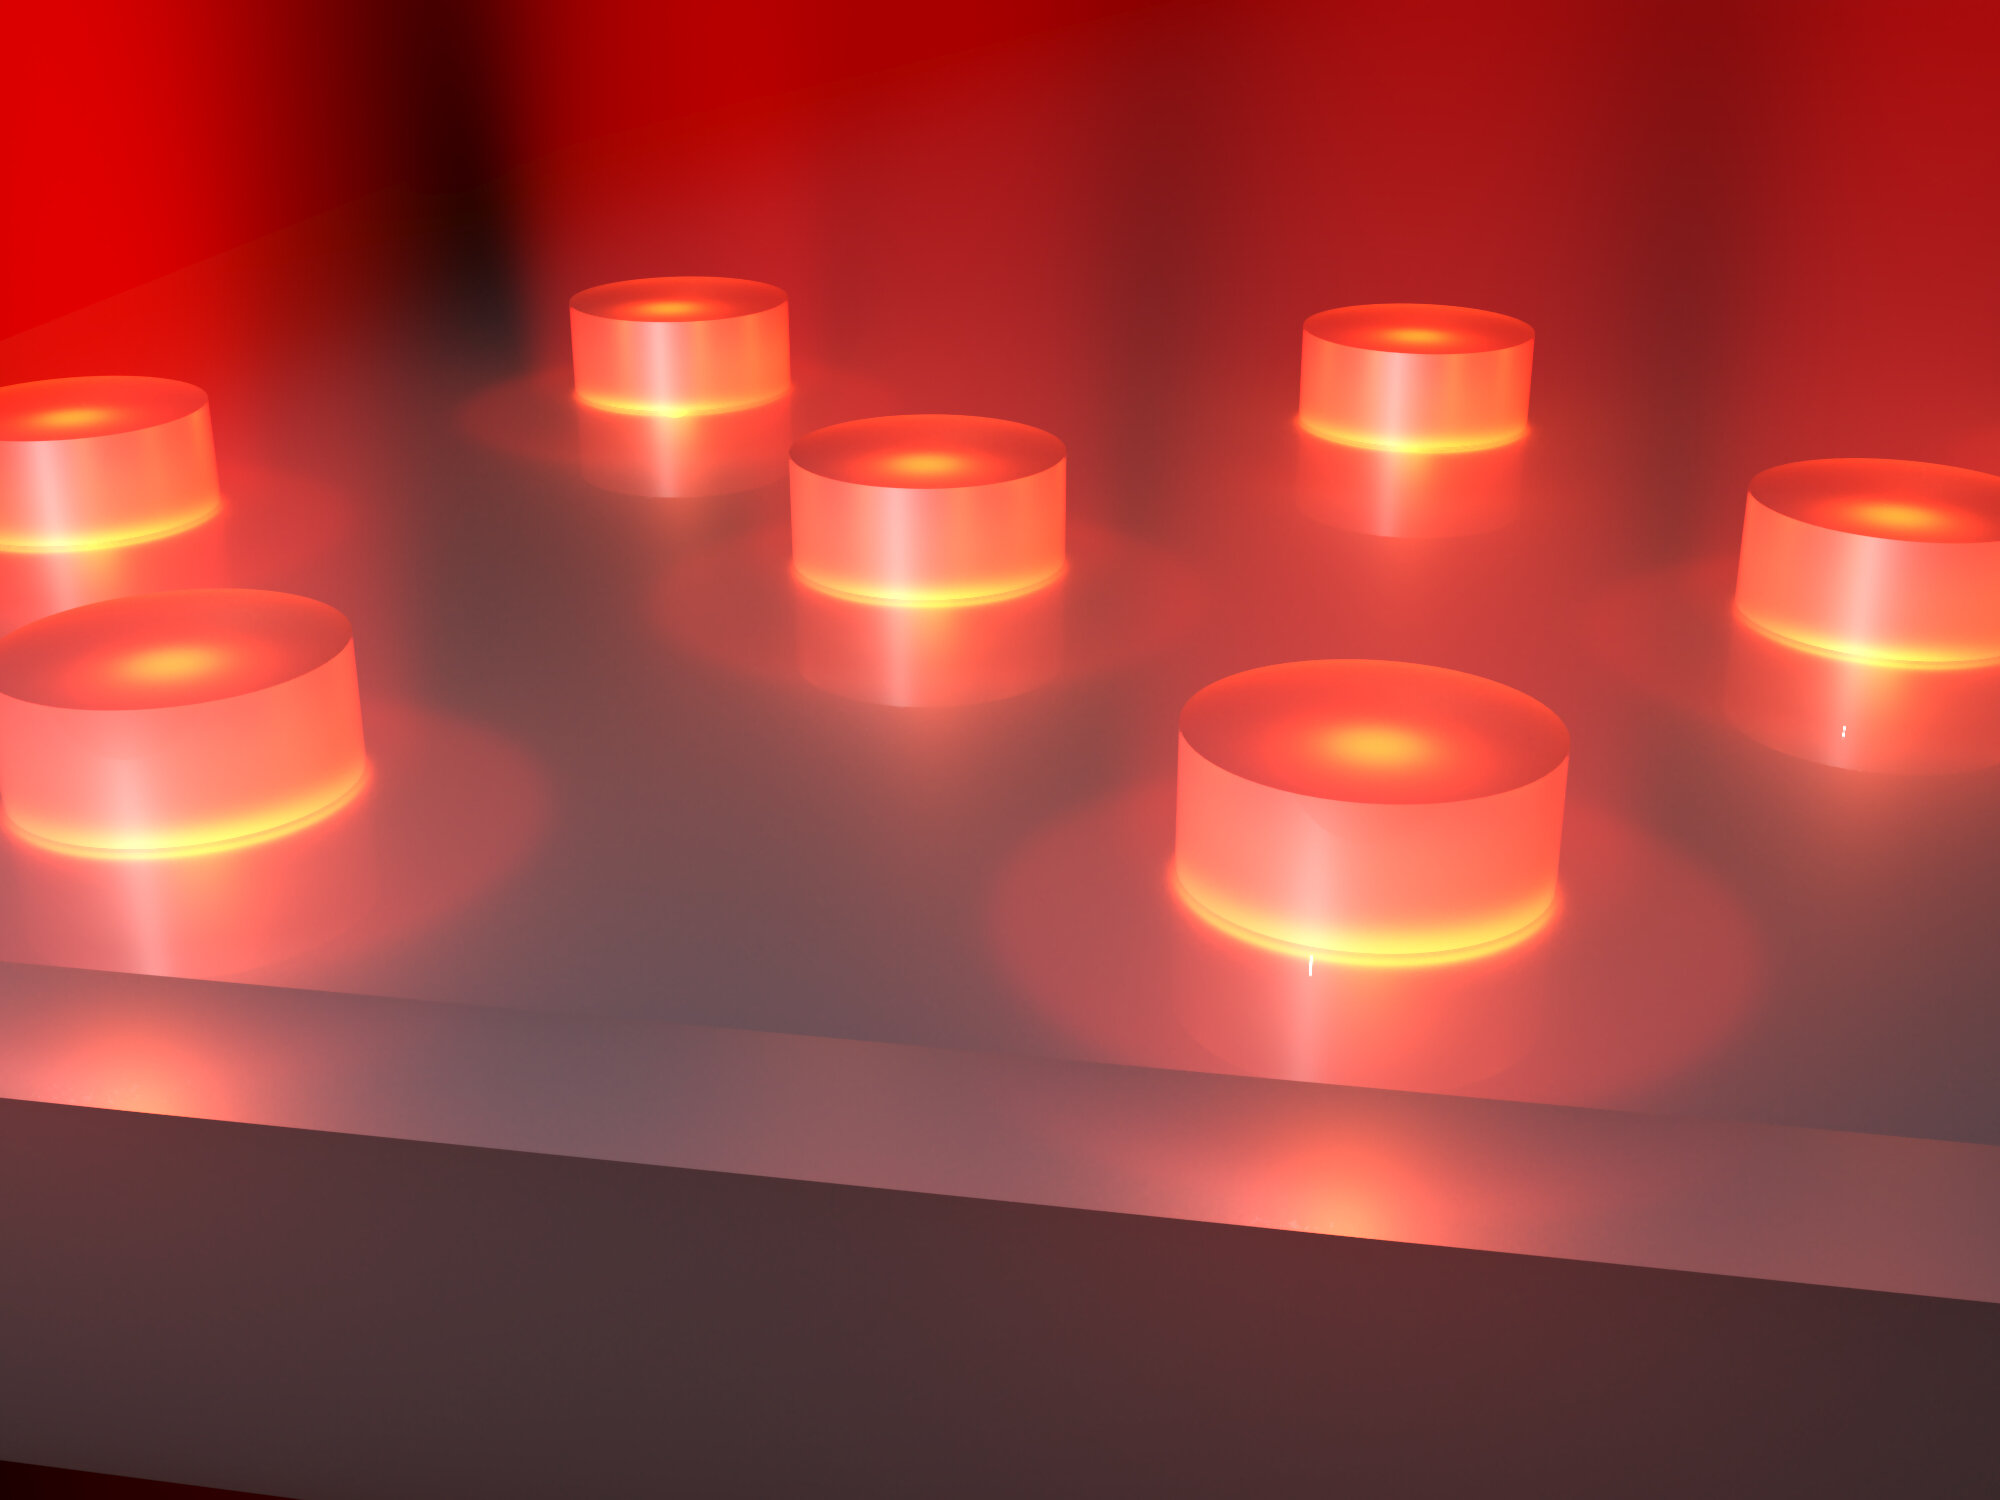 Incandescent light bulbs at the nanoscale